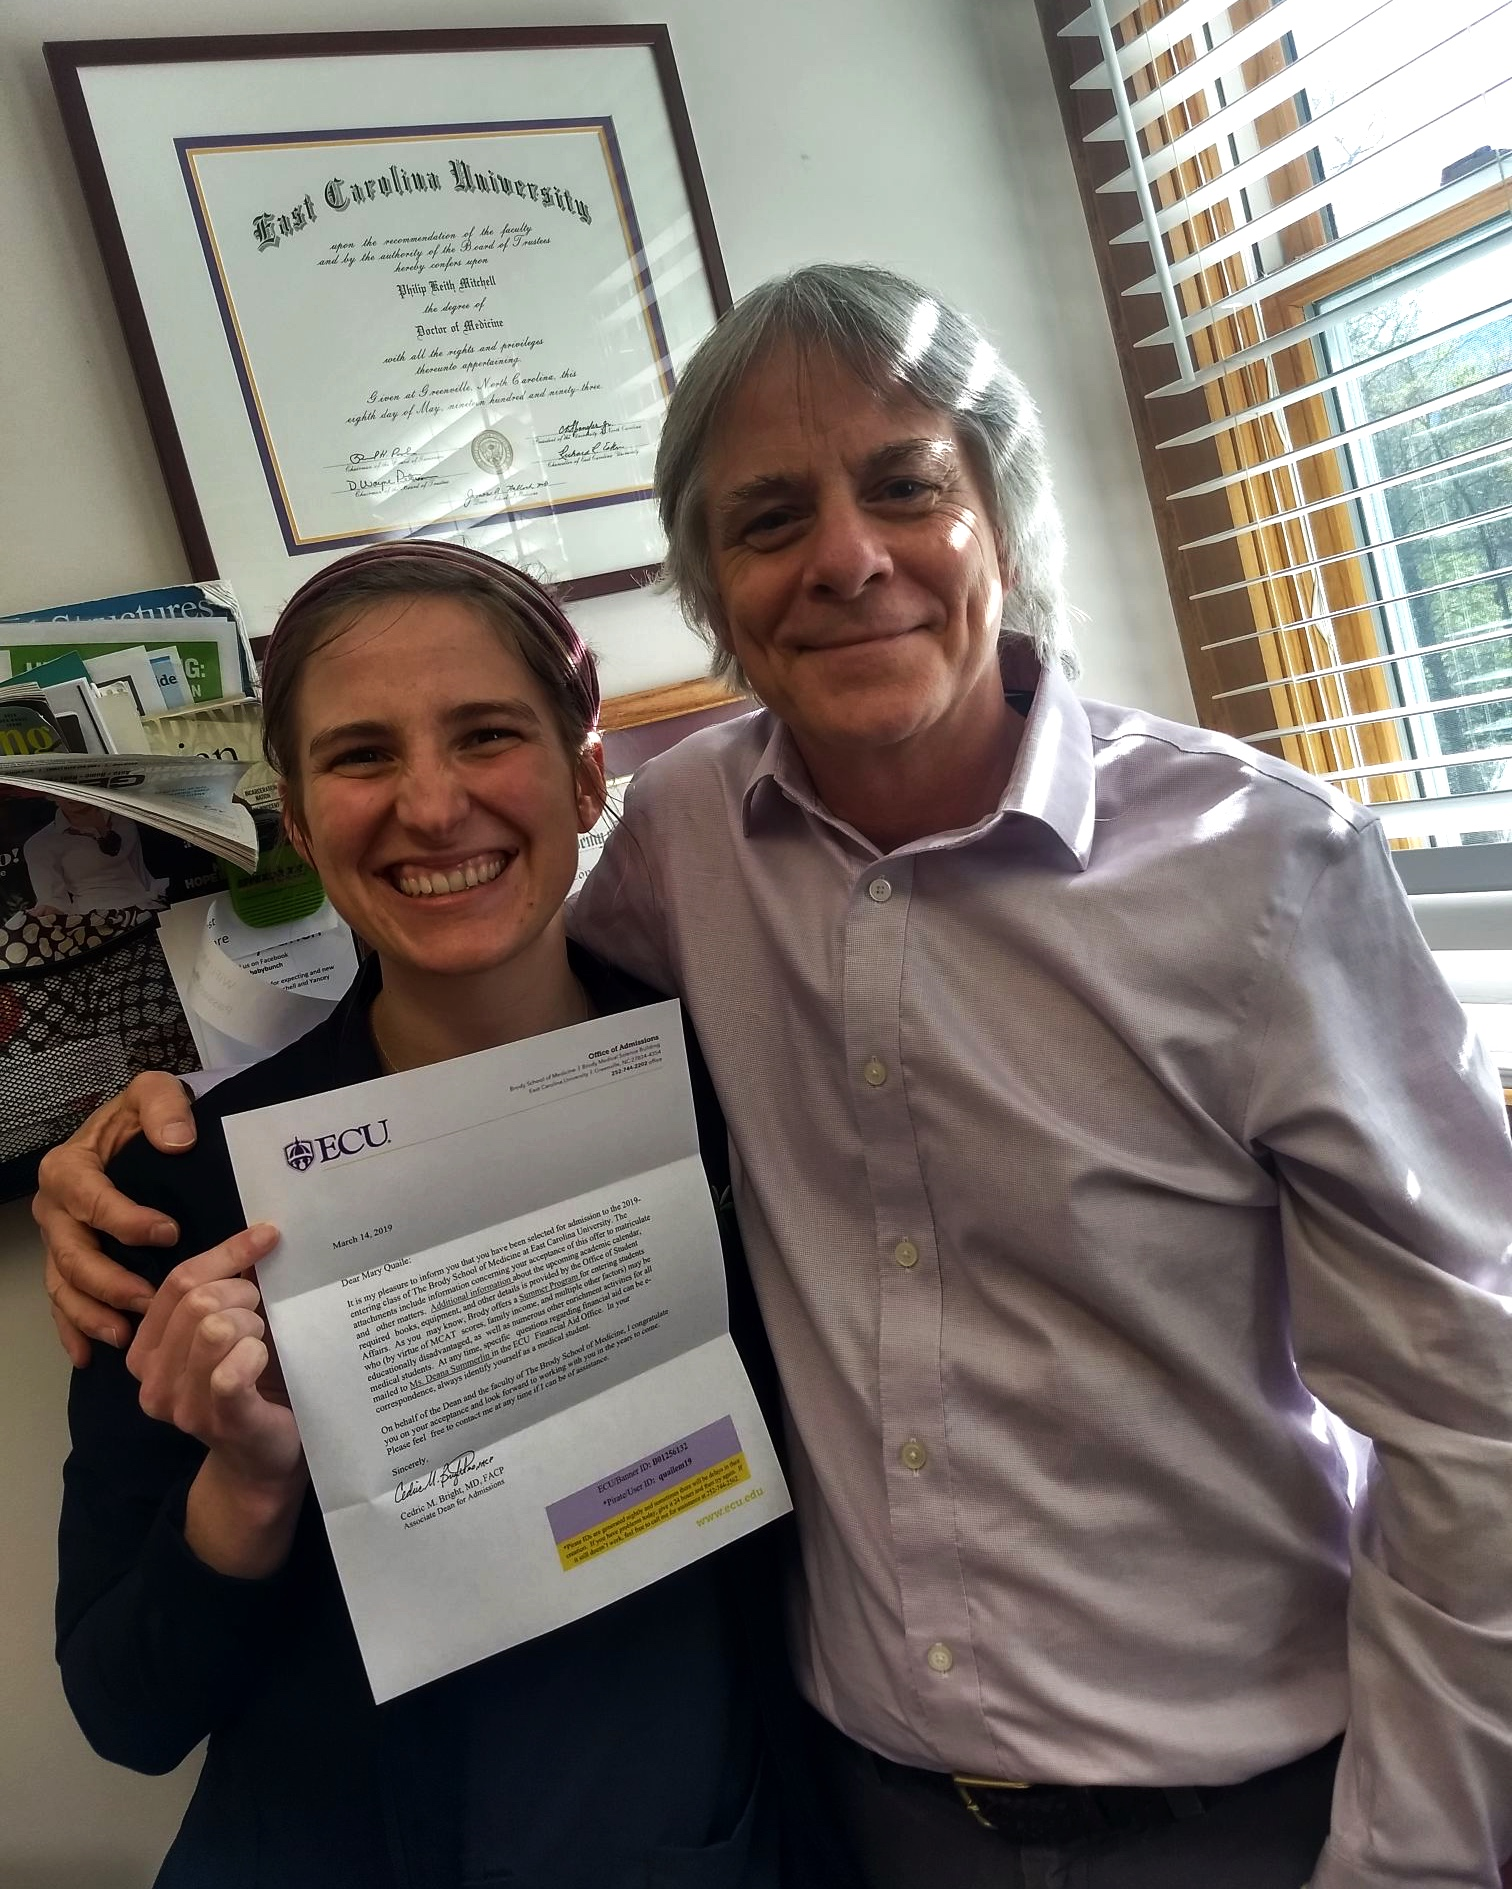 2017 Fellow Mary Quaile poses with medical school acceptance letter and mentor Dr. Philip Mitchell of Celo Health Center in Burnsville, NC.